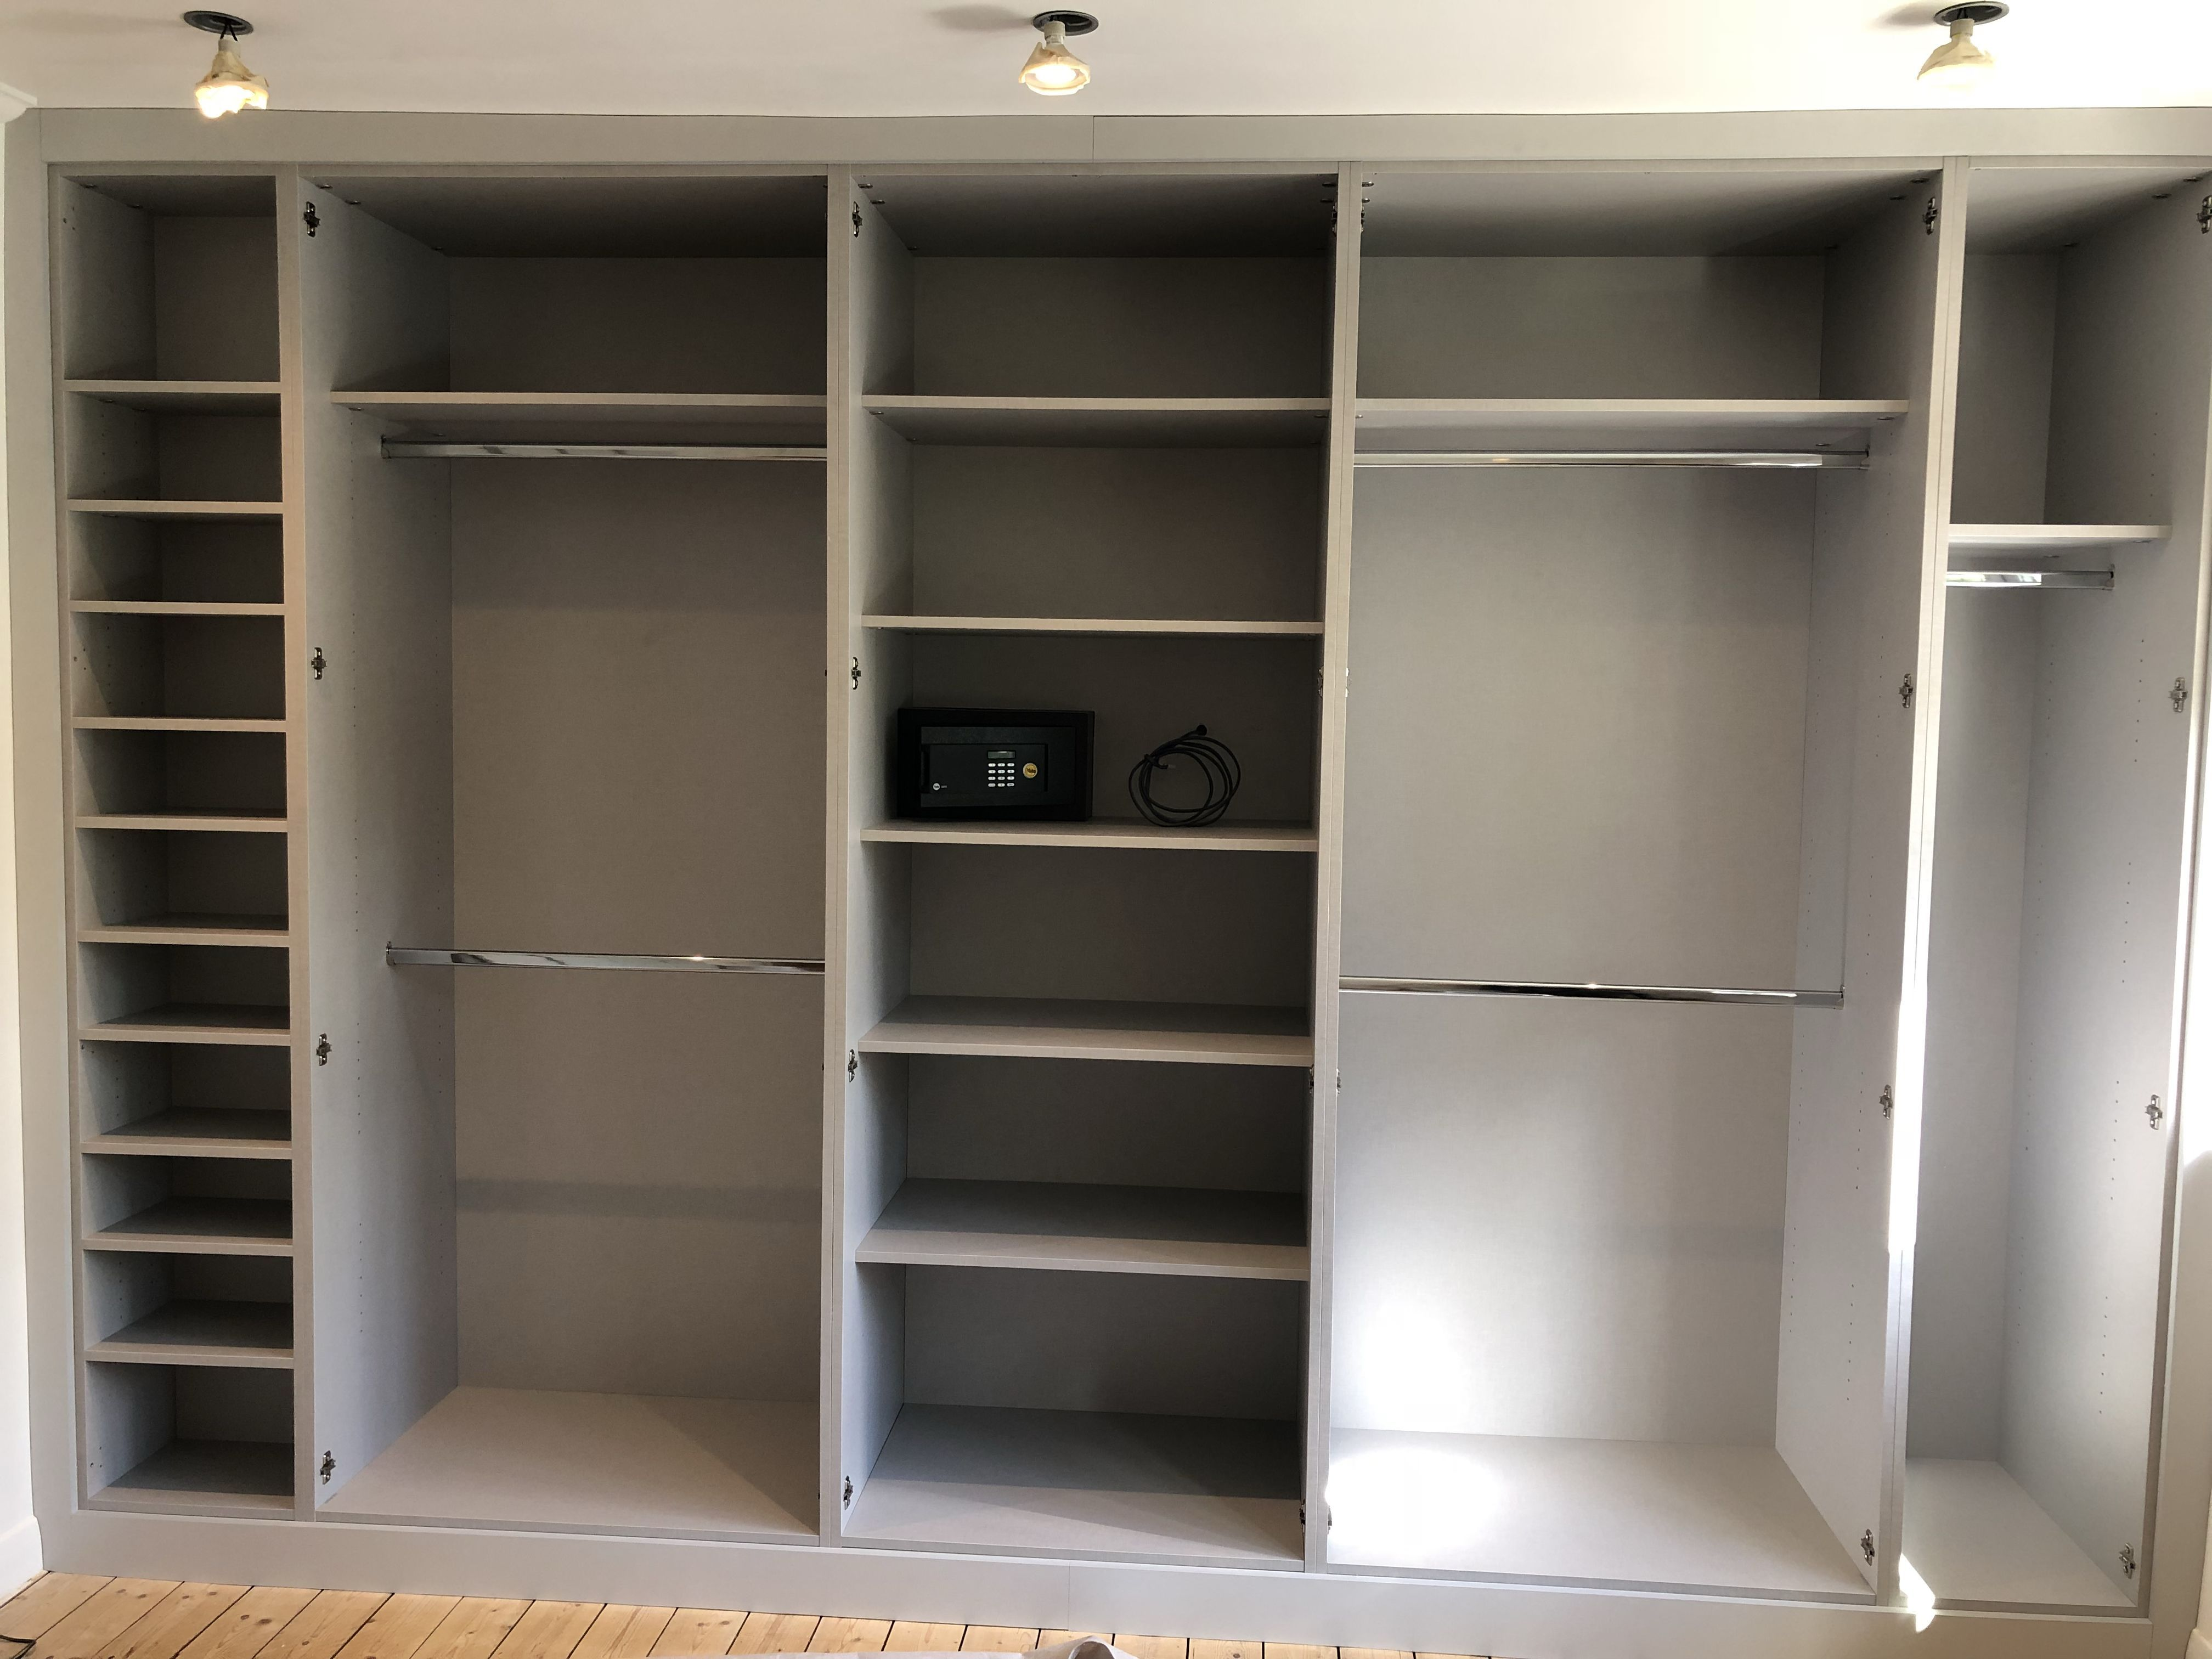 These Fitted Wardrobe Interiors Cater For All Needs Shoe Shelves